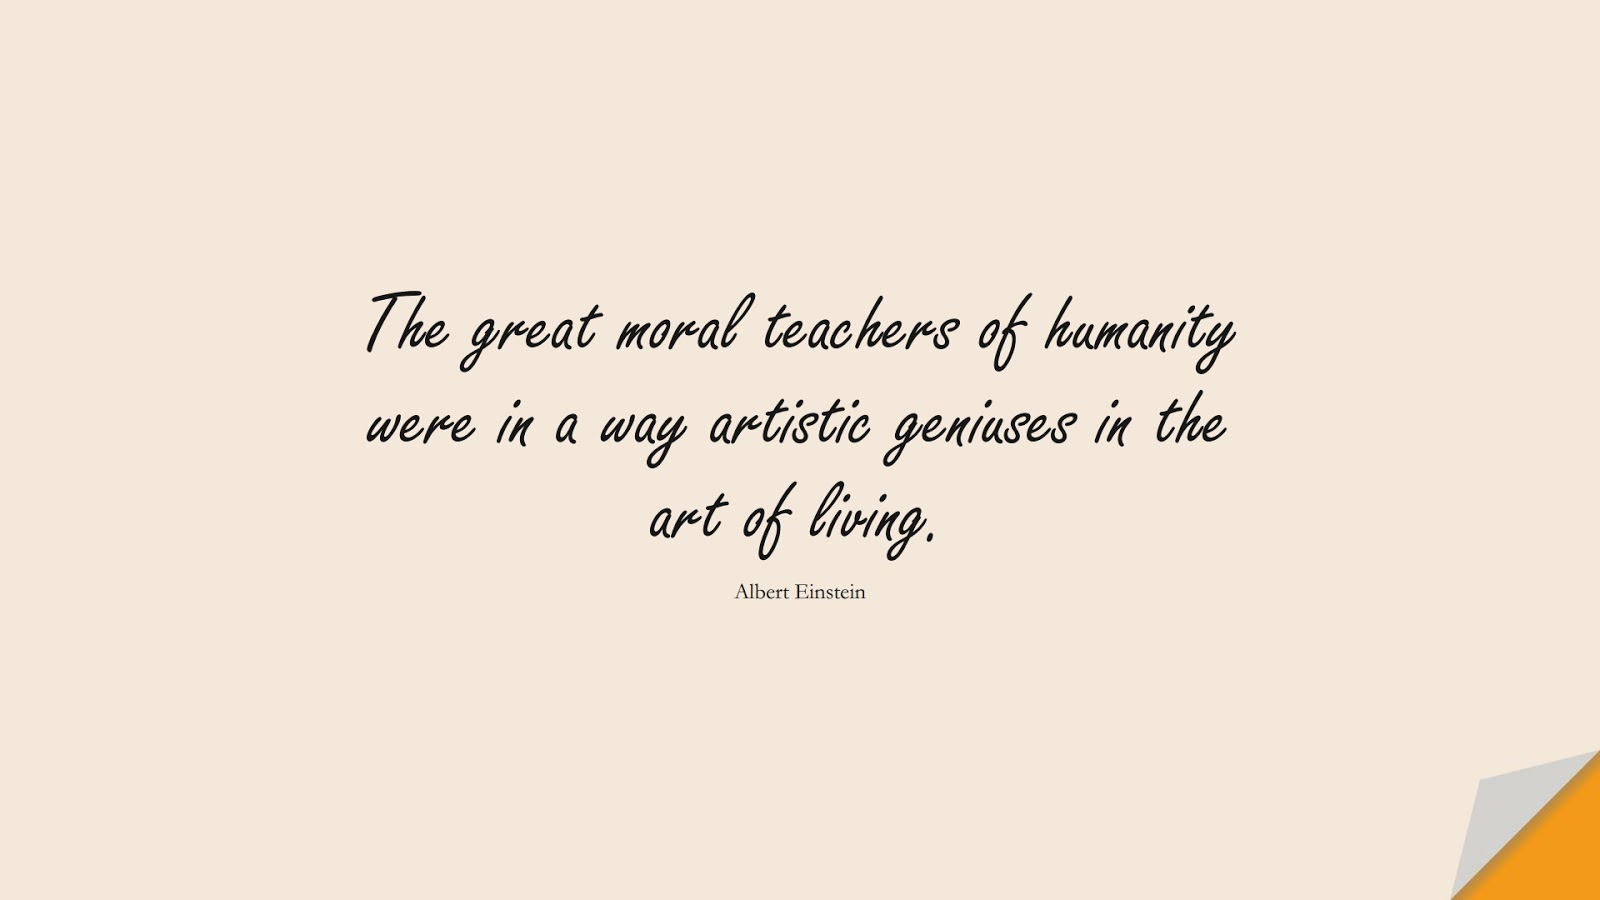 The great moral teachers of humanity were in a way artistic geniuses in the art of living. (Albert Einstein);  #HumanityQuotes